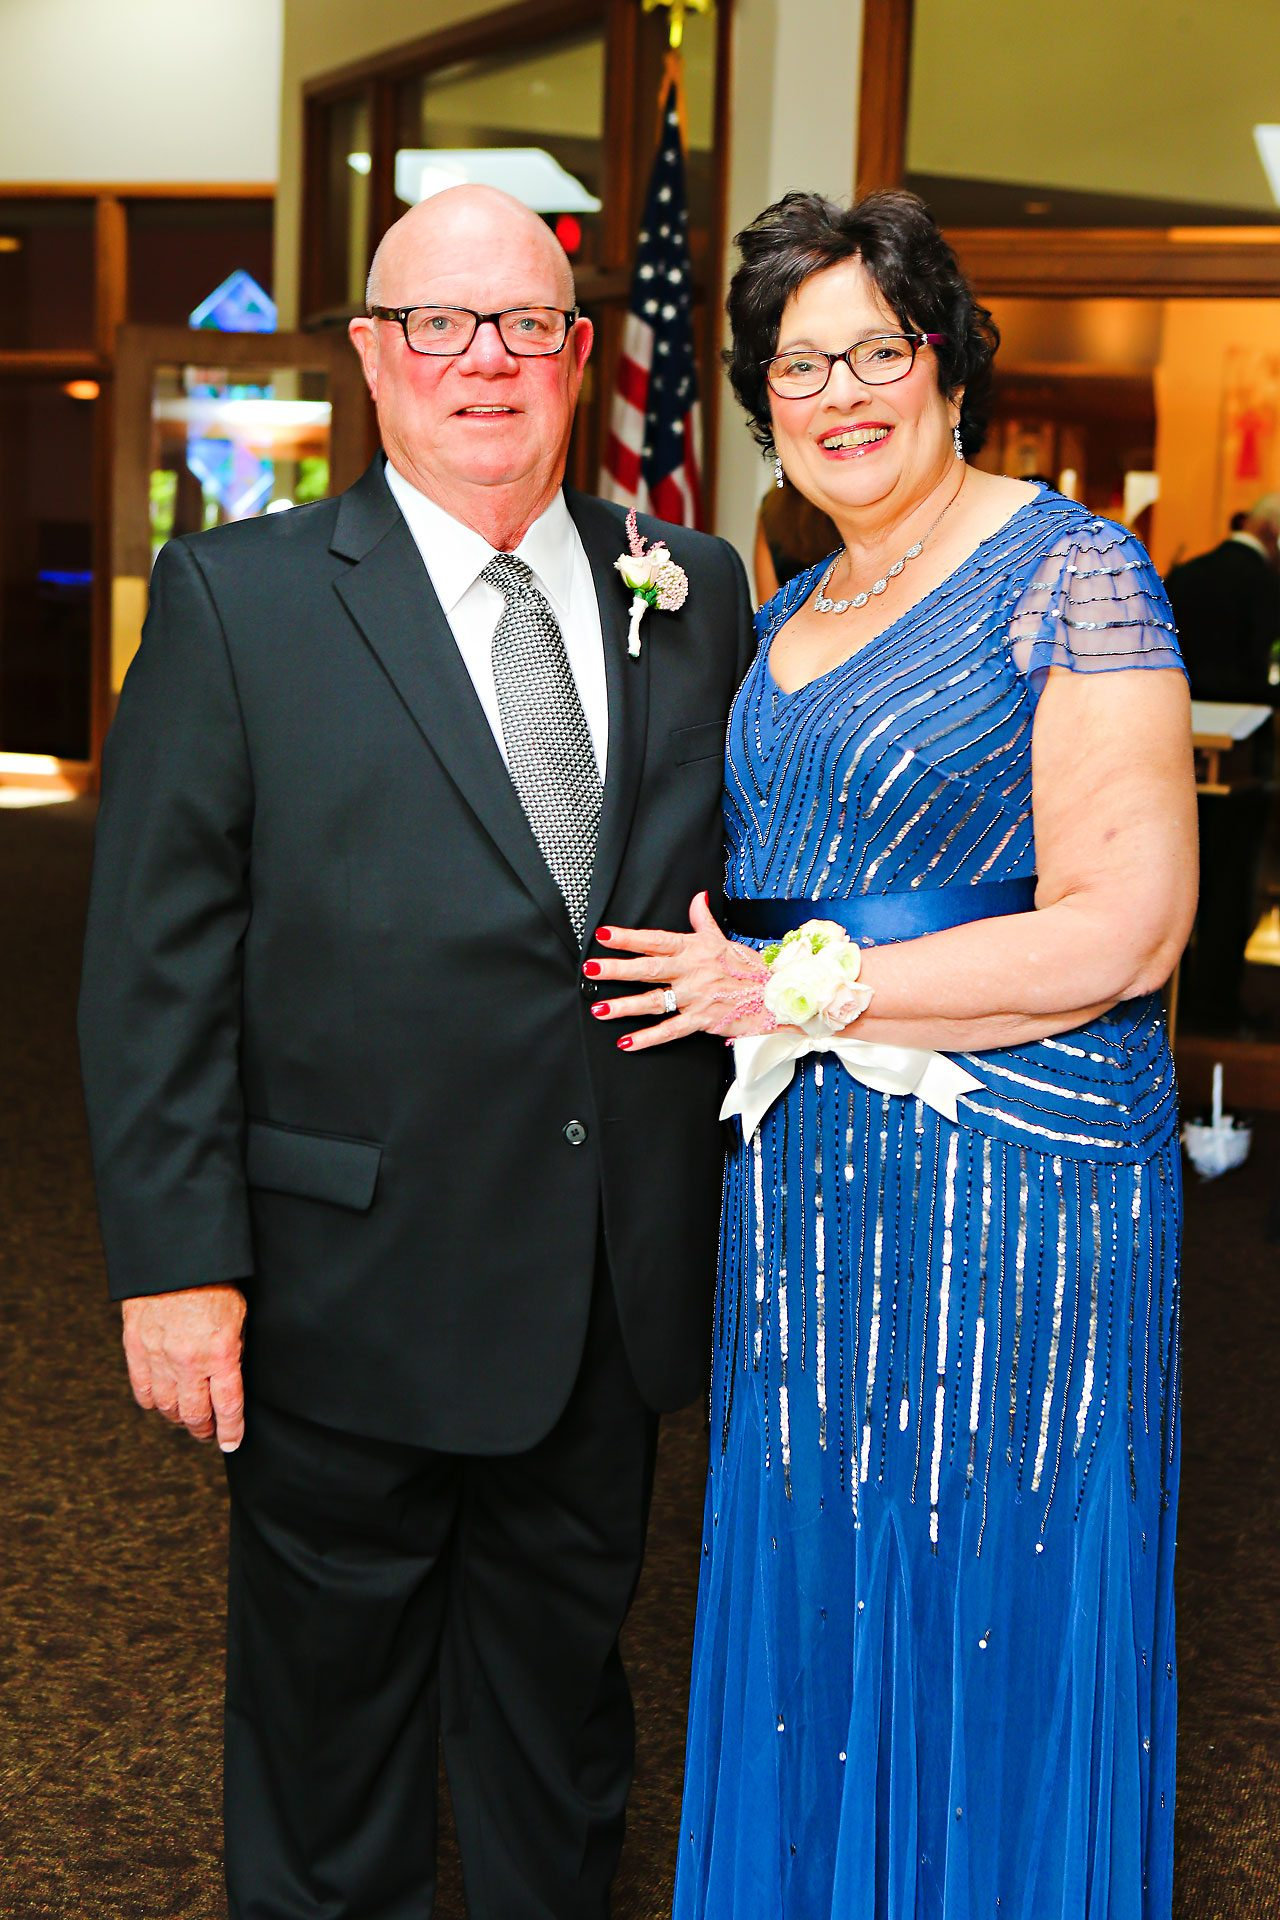 Emmy Benji Emyprean Fort Wayne Wedding 189